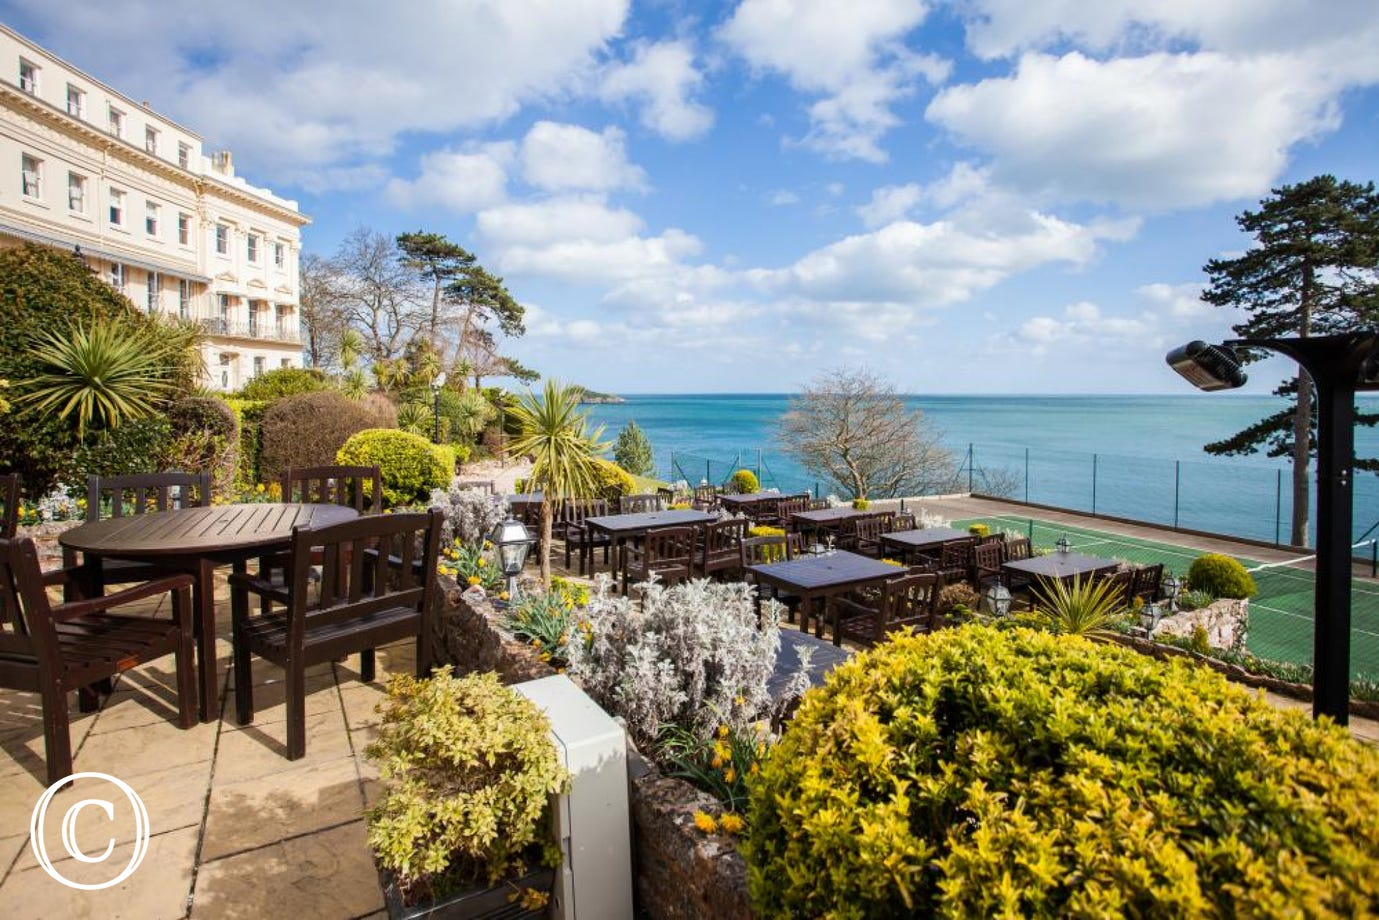 Meadfoot Beach Apartment, Torquay - Outside space